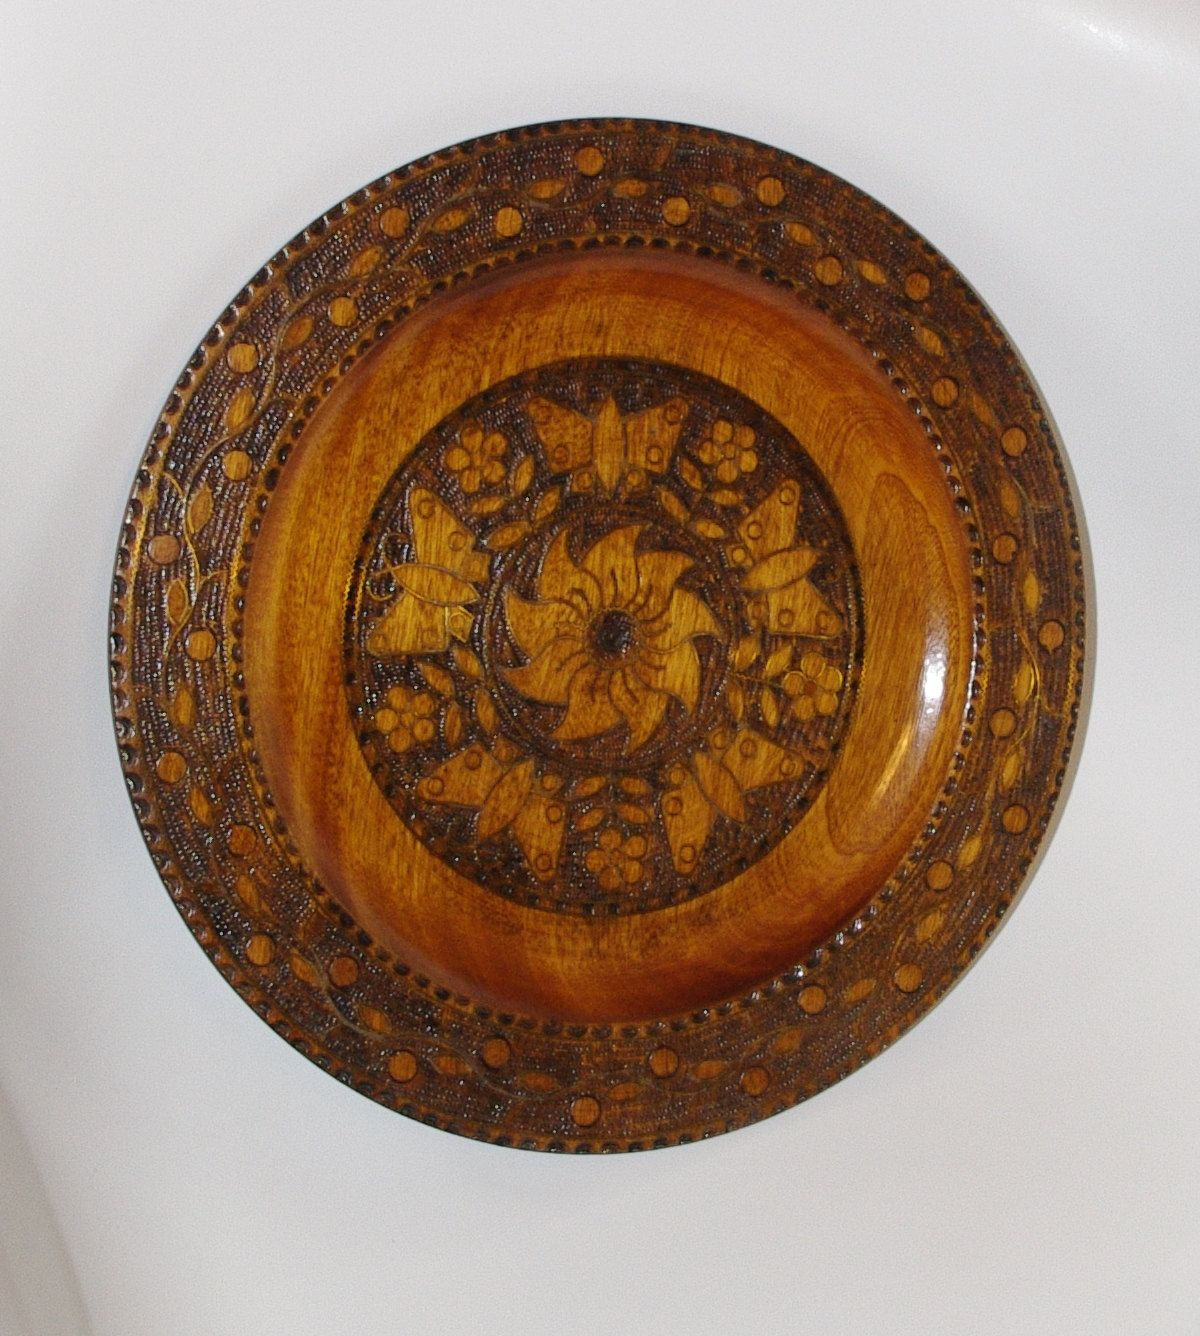 Vintage Handcarved Brown Wooden Plate Woodburning Pyrography Etsy Wooden Wall Hangings Plate Wall Decor Plates On Wall